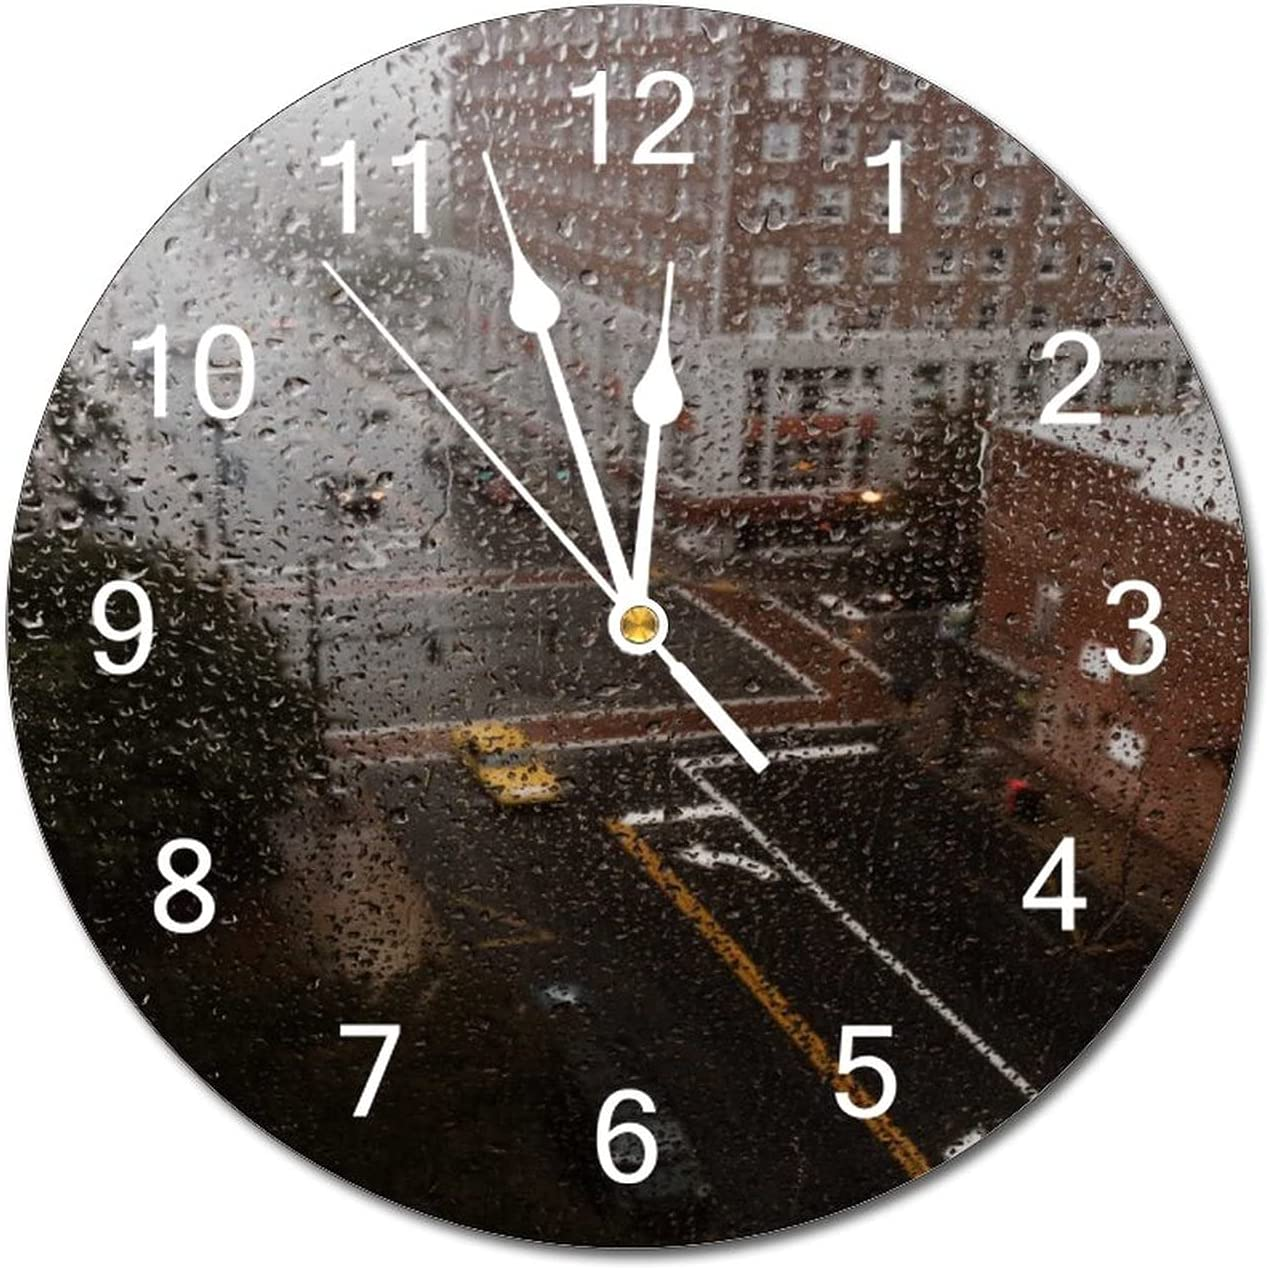 Anyuwerw Water Drops On Glass Long Beach Mall Wood 12 Clock Sile Round Wall Inch Max 46% OFF